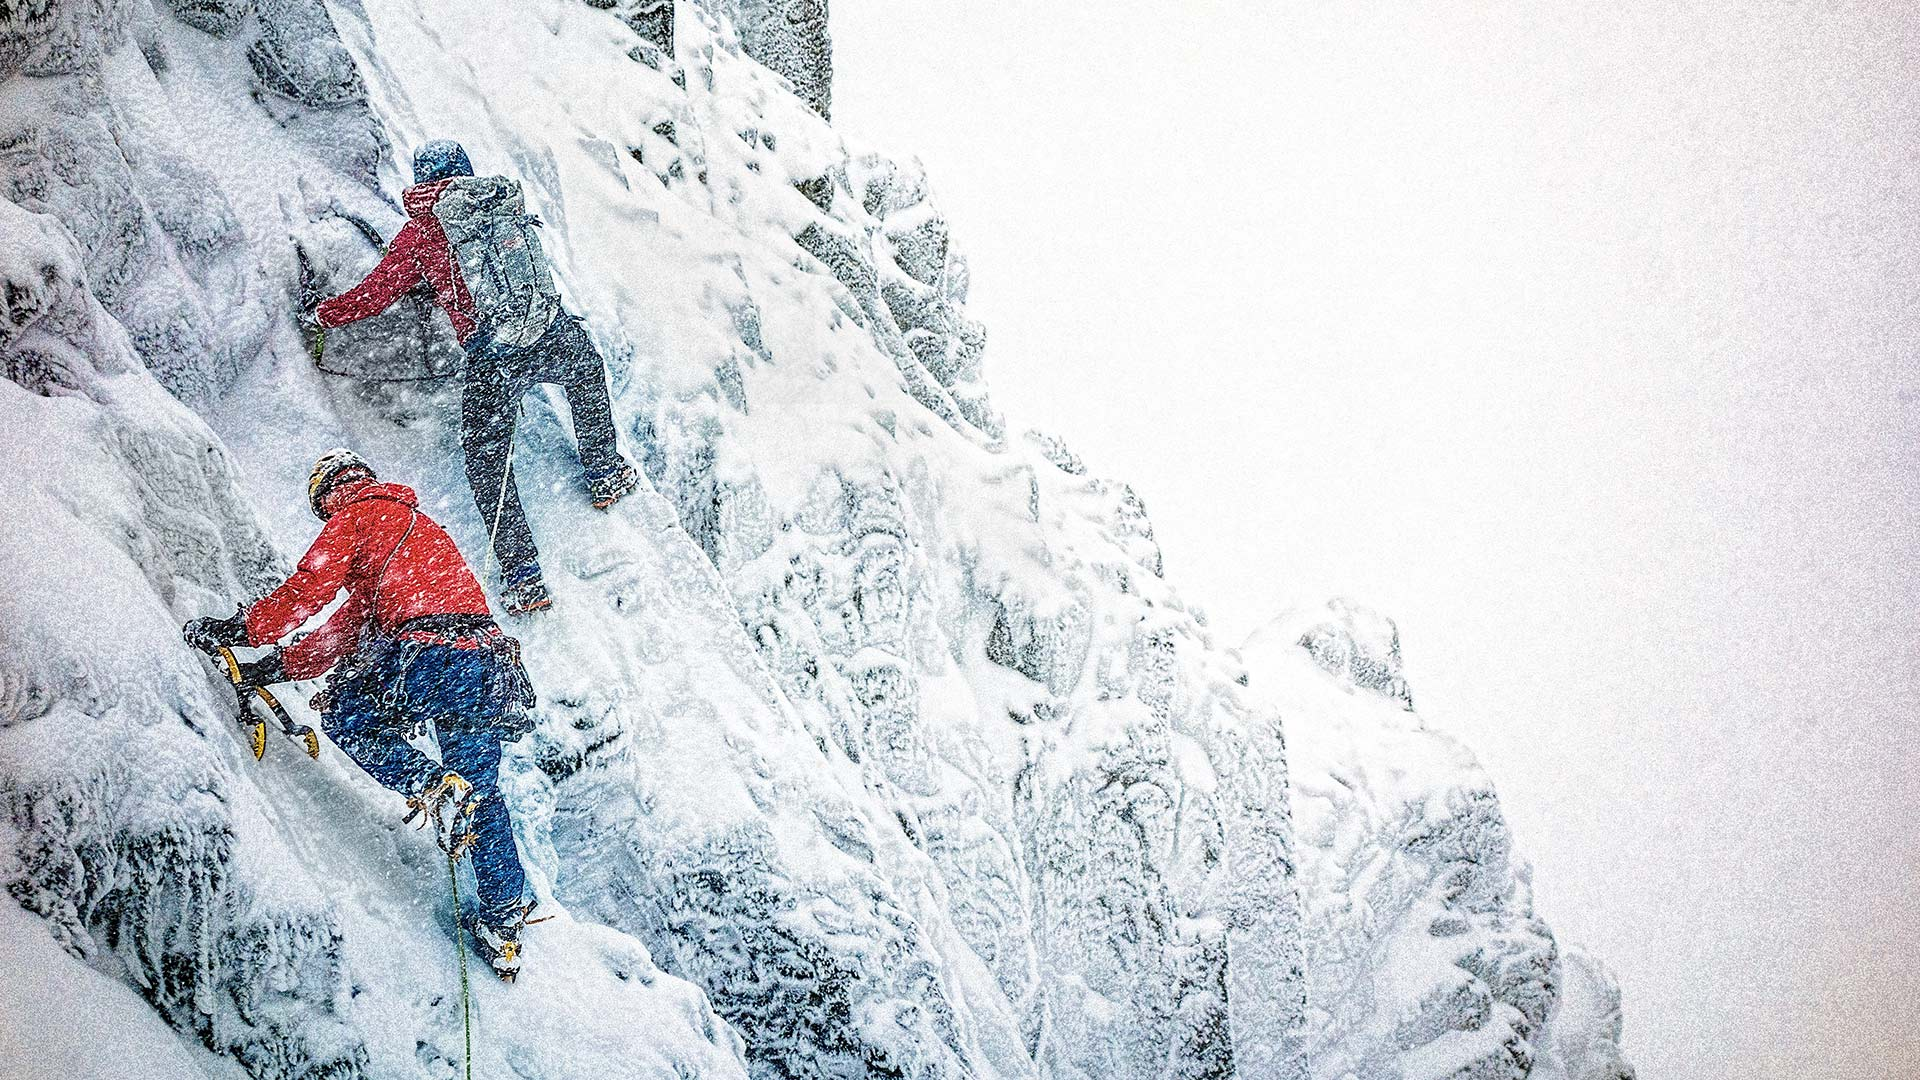 Josh Wharton and Steve House quest into the worsening weather of Ben Nevis, Scotland. MIKEY SCHAEFER